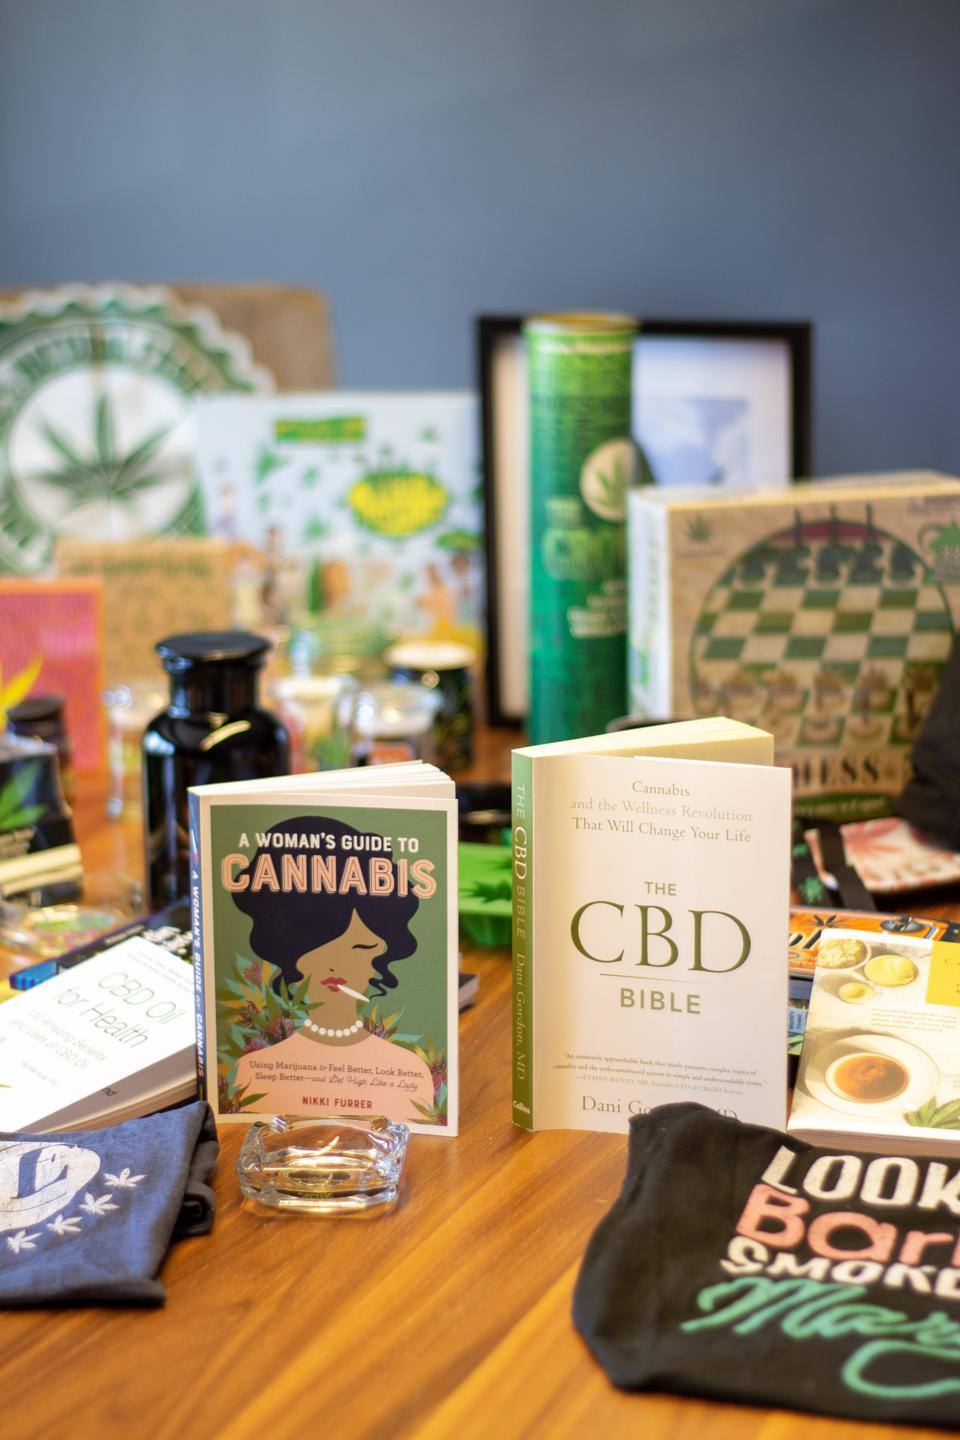 Cannabis books and clothing